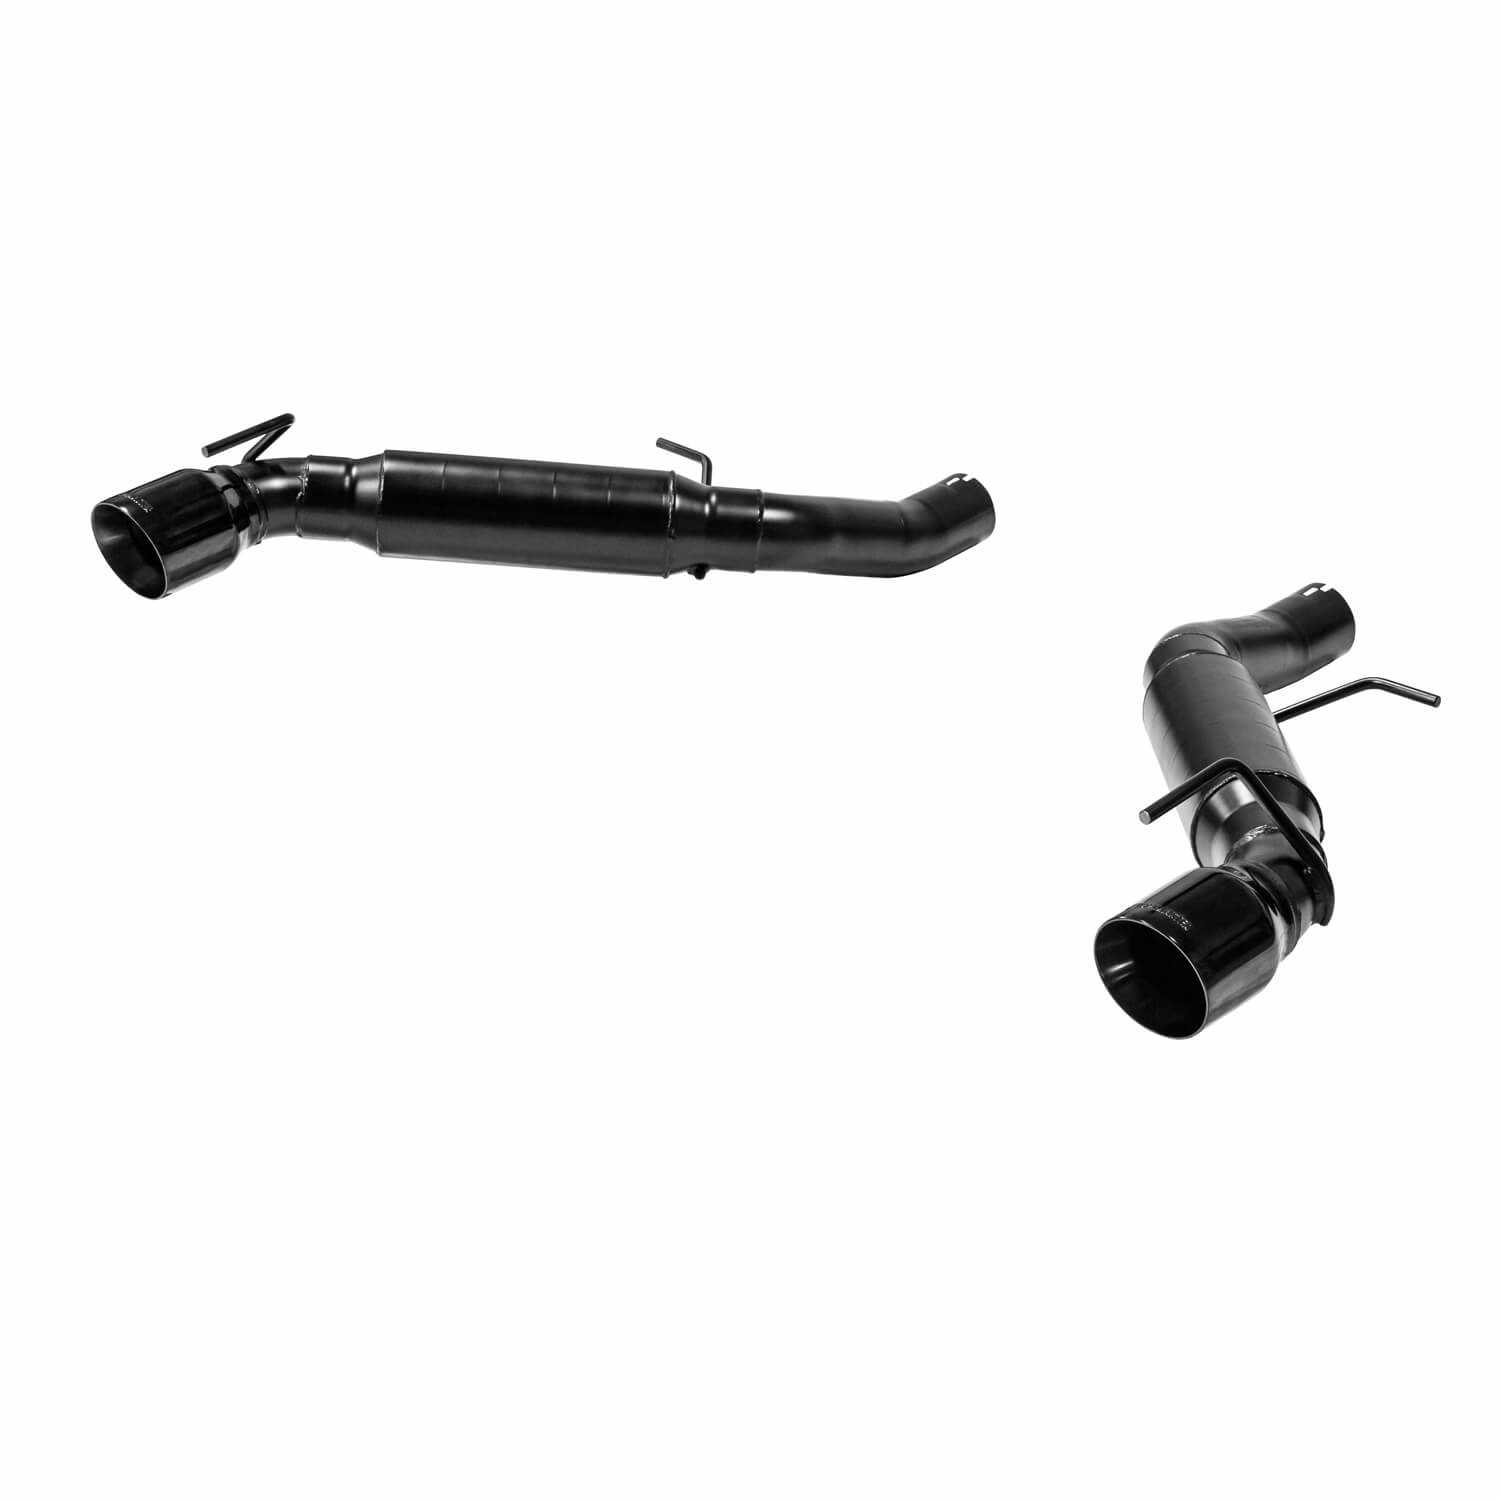 817745 Flowmaster Outlaw Series™ Axle Back Exhaust System